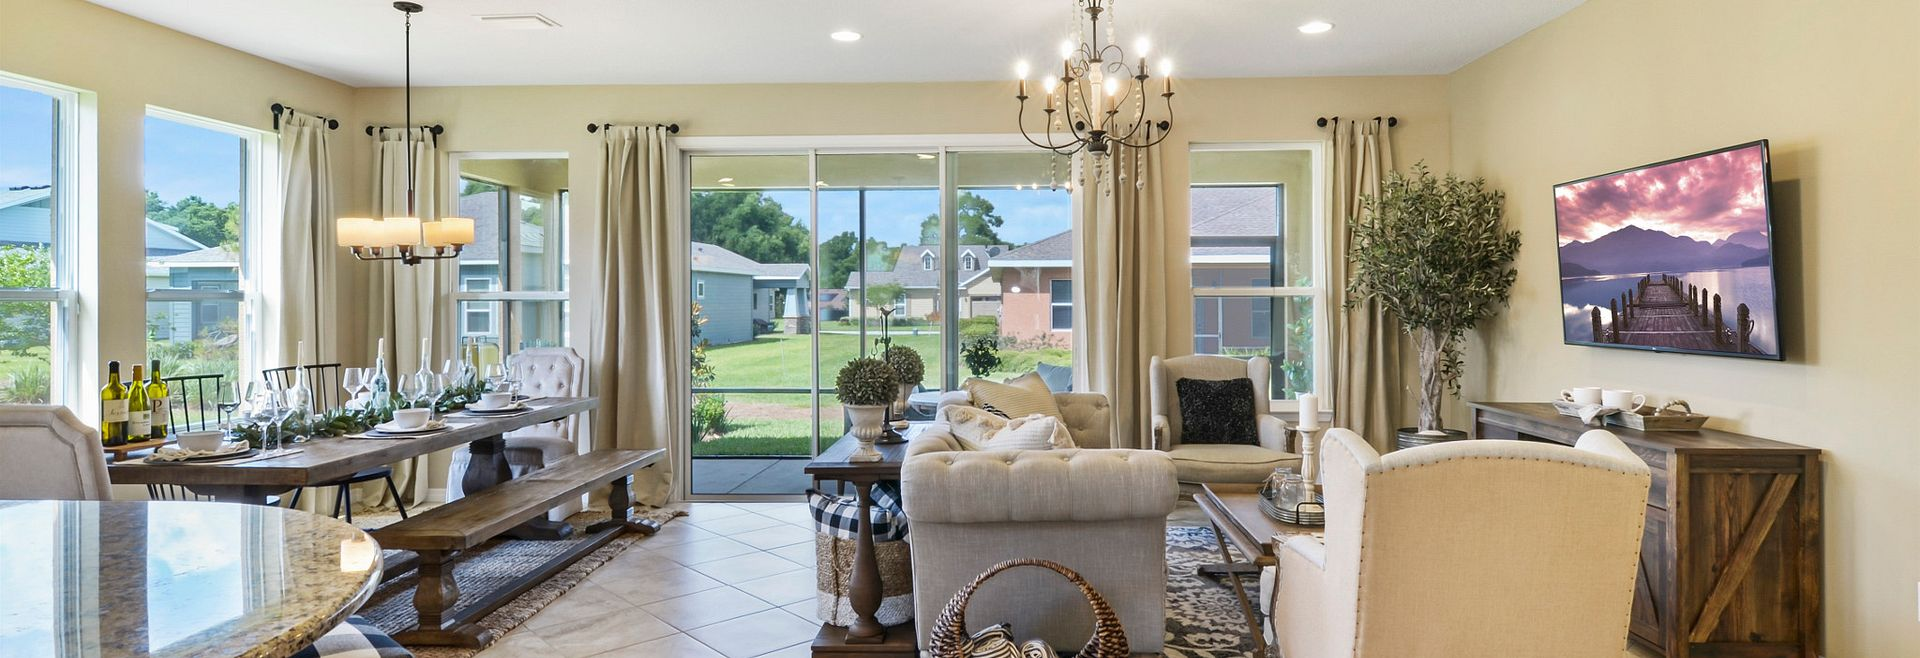 Ocala Delcare Model Home Great Room